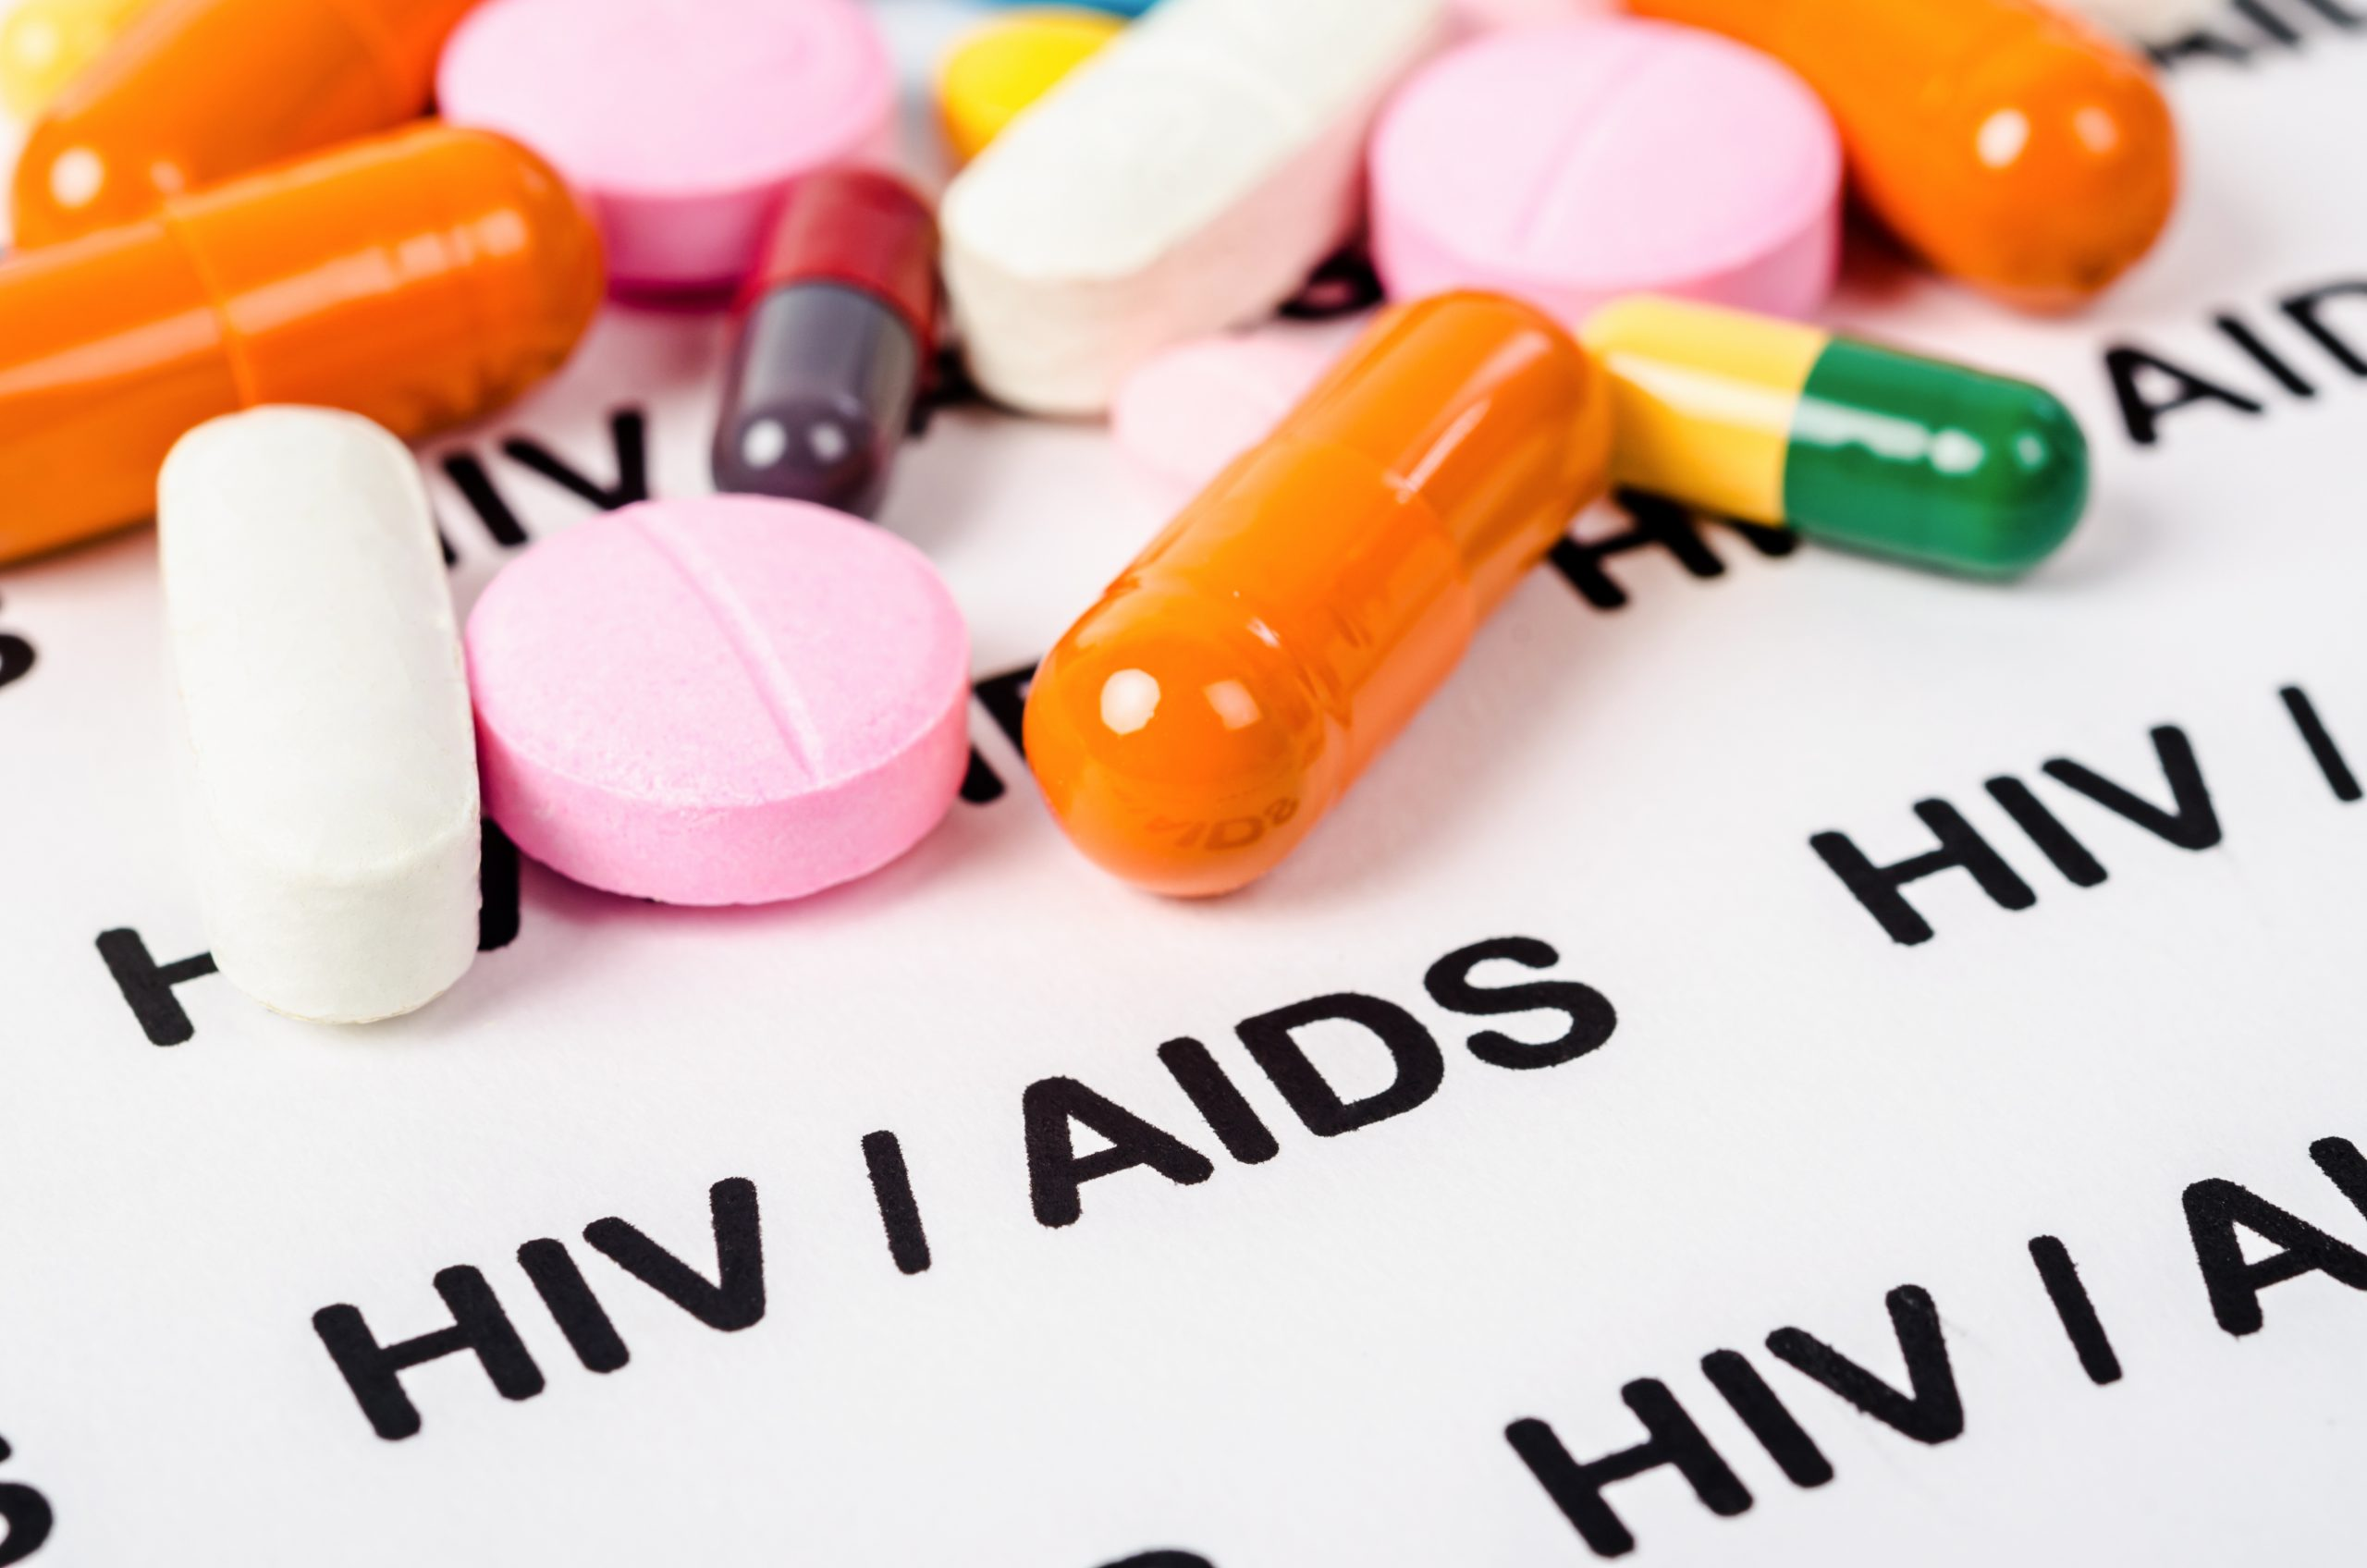 Transmission of HIV can be eliminated in a decade, minister says